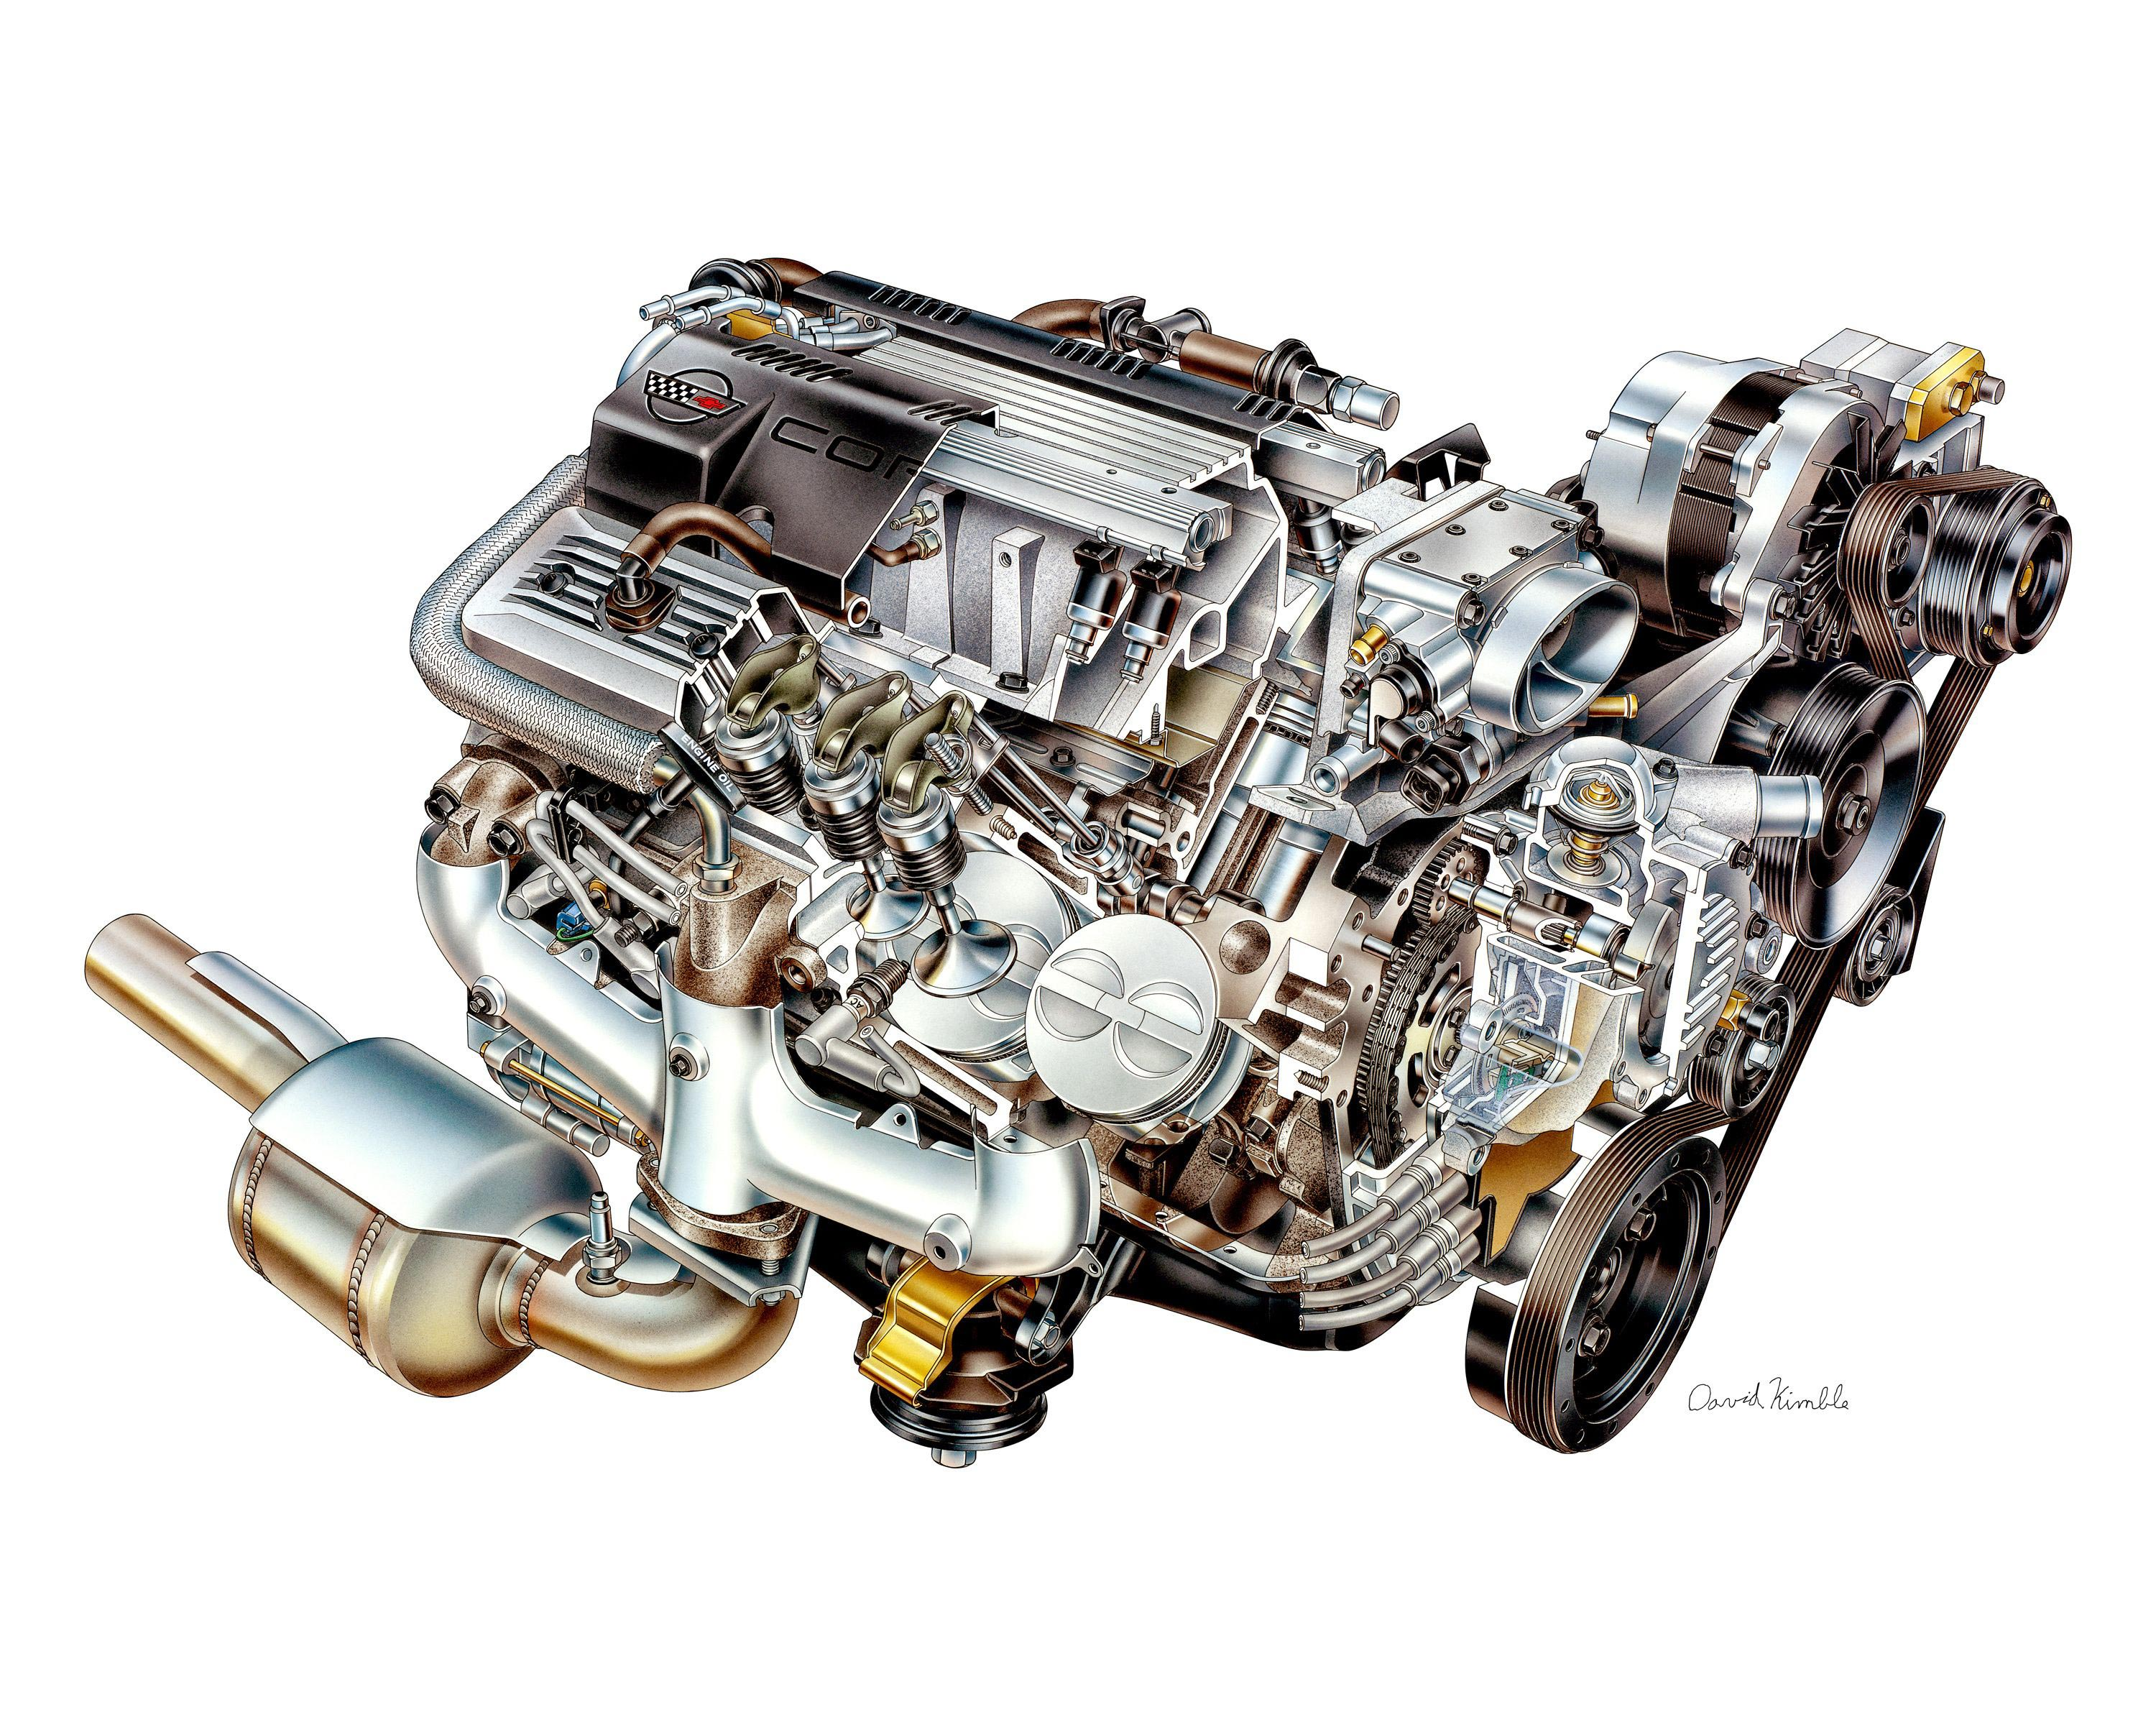 Chevrolet LT1 5.7 Engine cutaway drawing